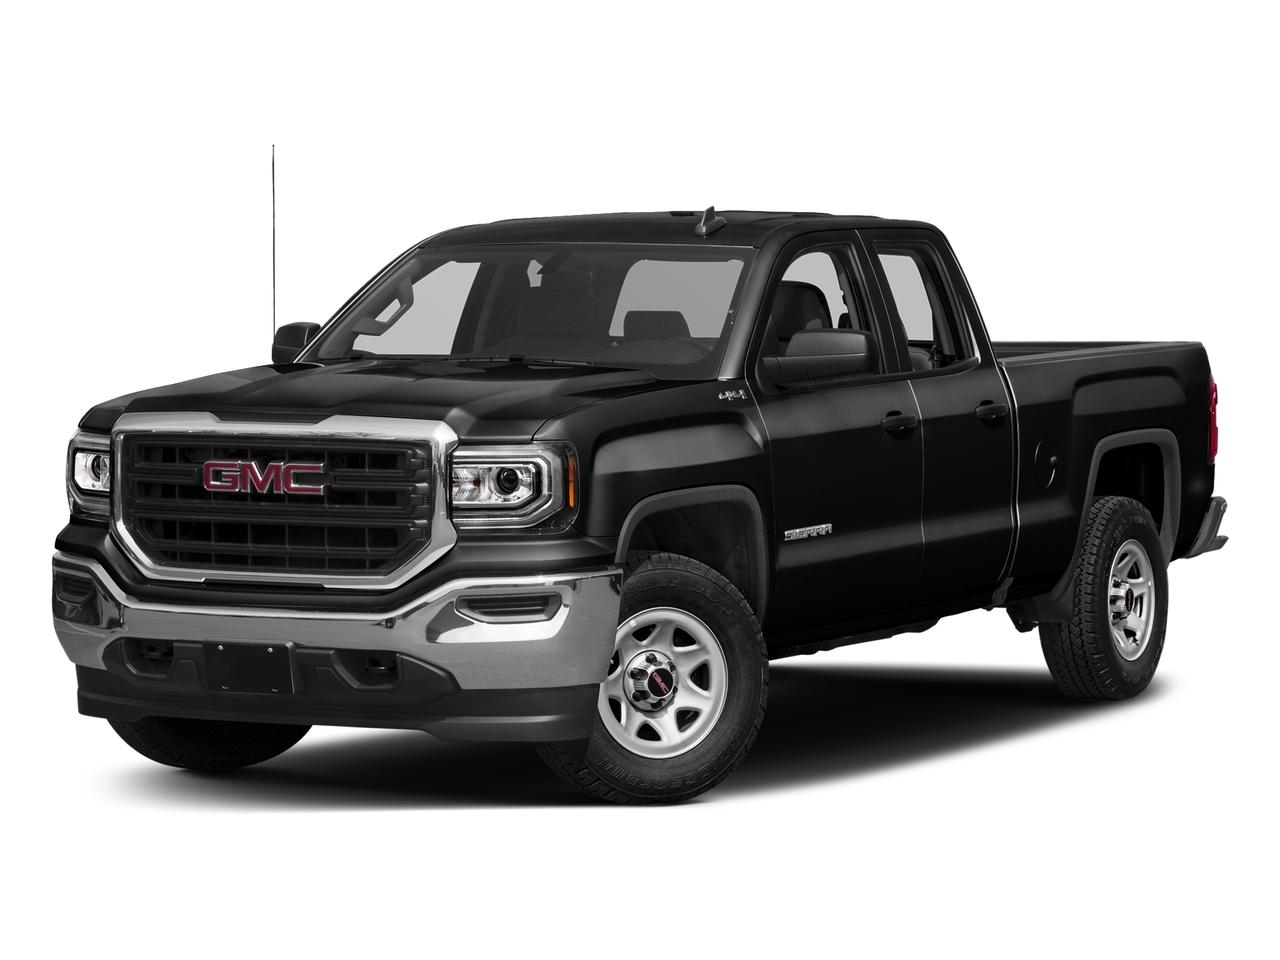 2017 GMC Sierra 1500 Vehicle Photo in Corpus Christi, TX 78411